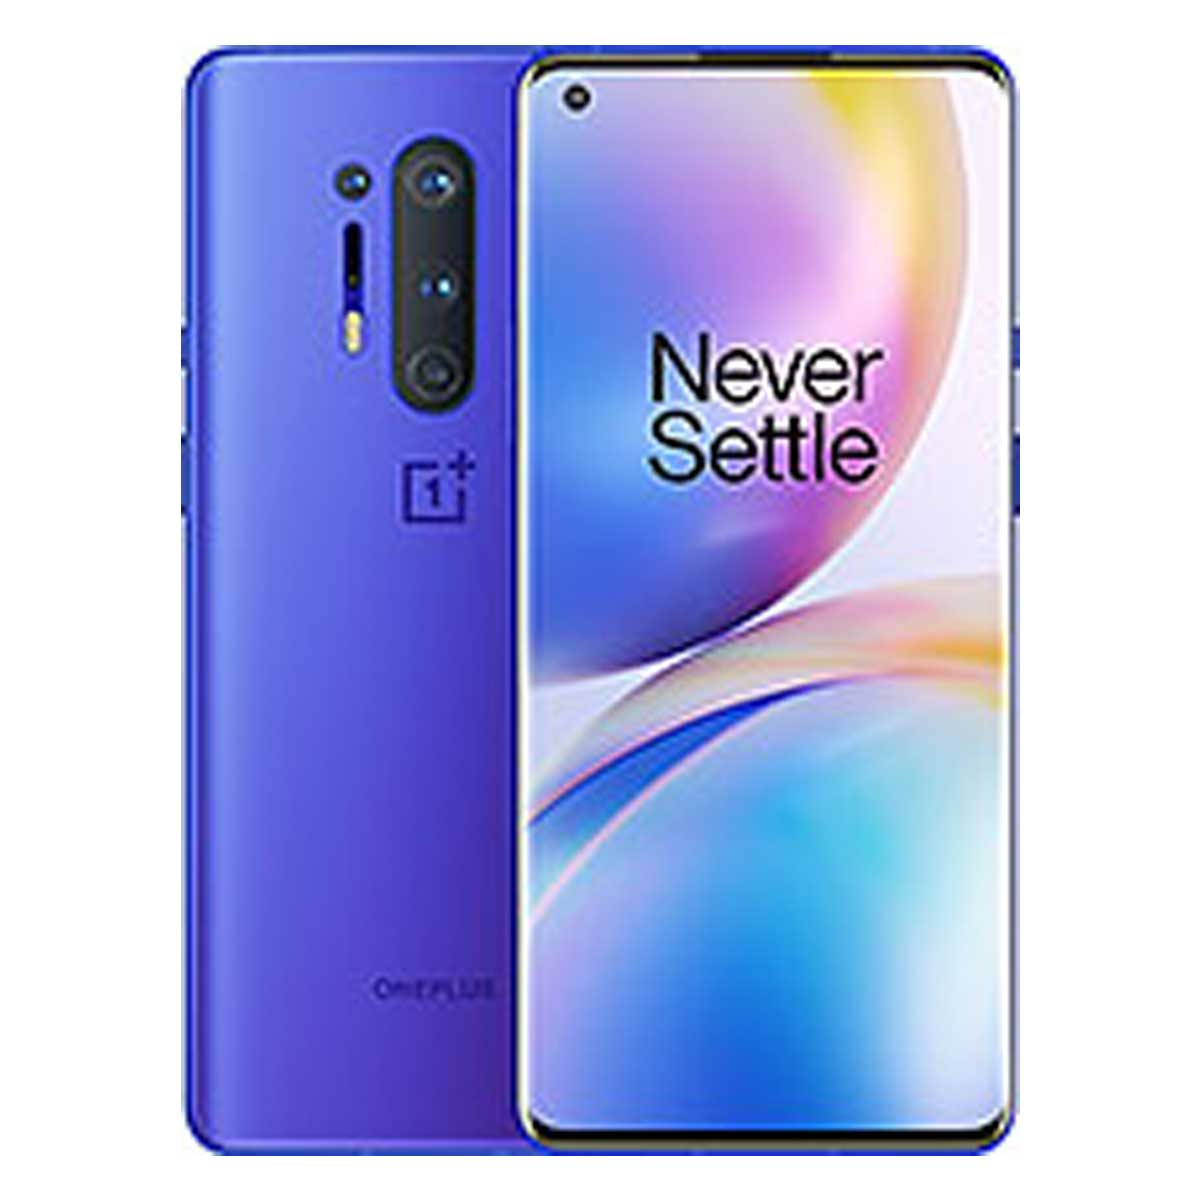 OnePlus 8 Pro Price in India, Full Specs - 7th August 2020 |